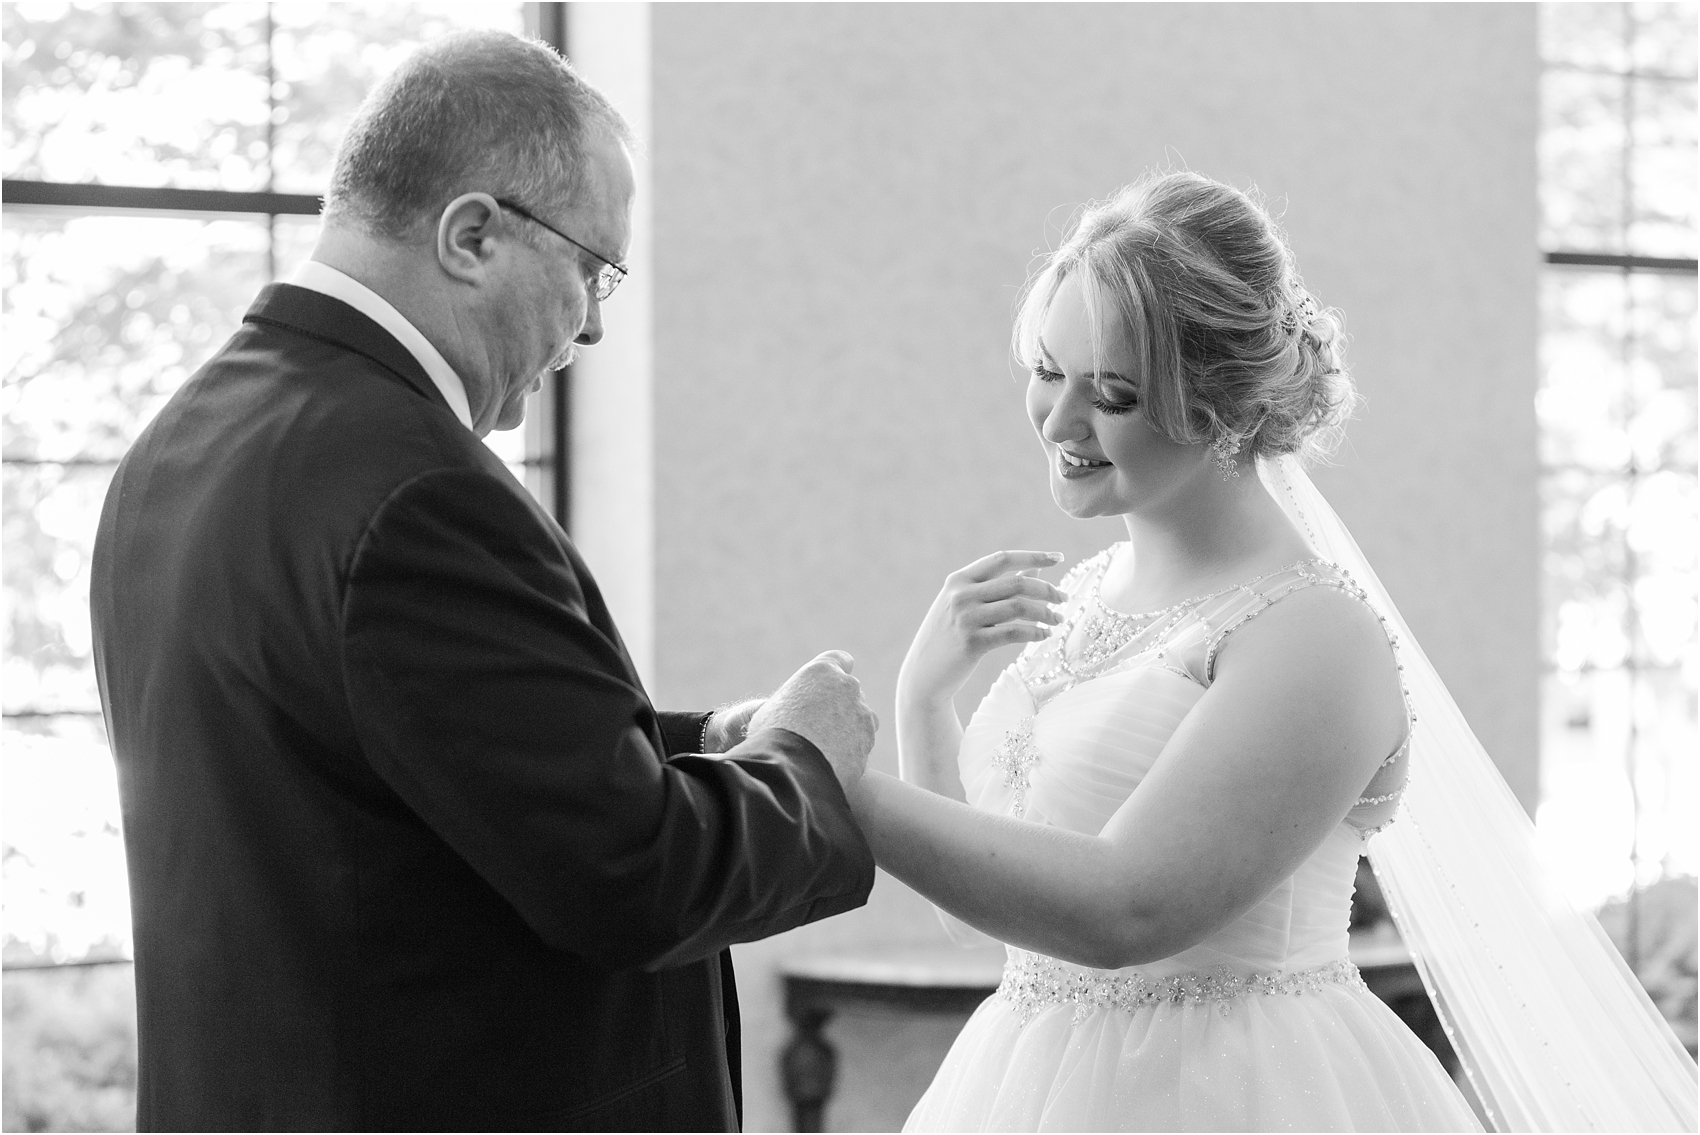 lord-of-the-rings-inspired-wedding-photos-at-crystal-gardens-in-howell-mi-by-courtney-carolyn-photography_0020.jpg